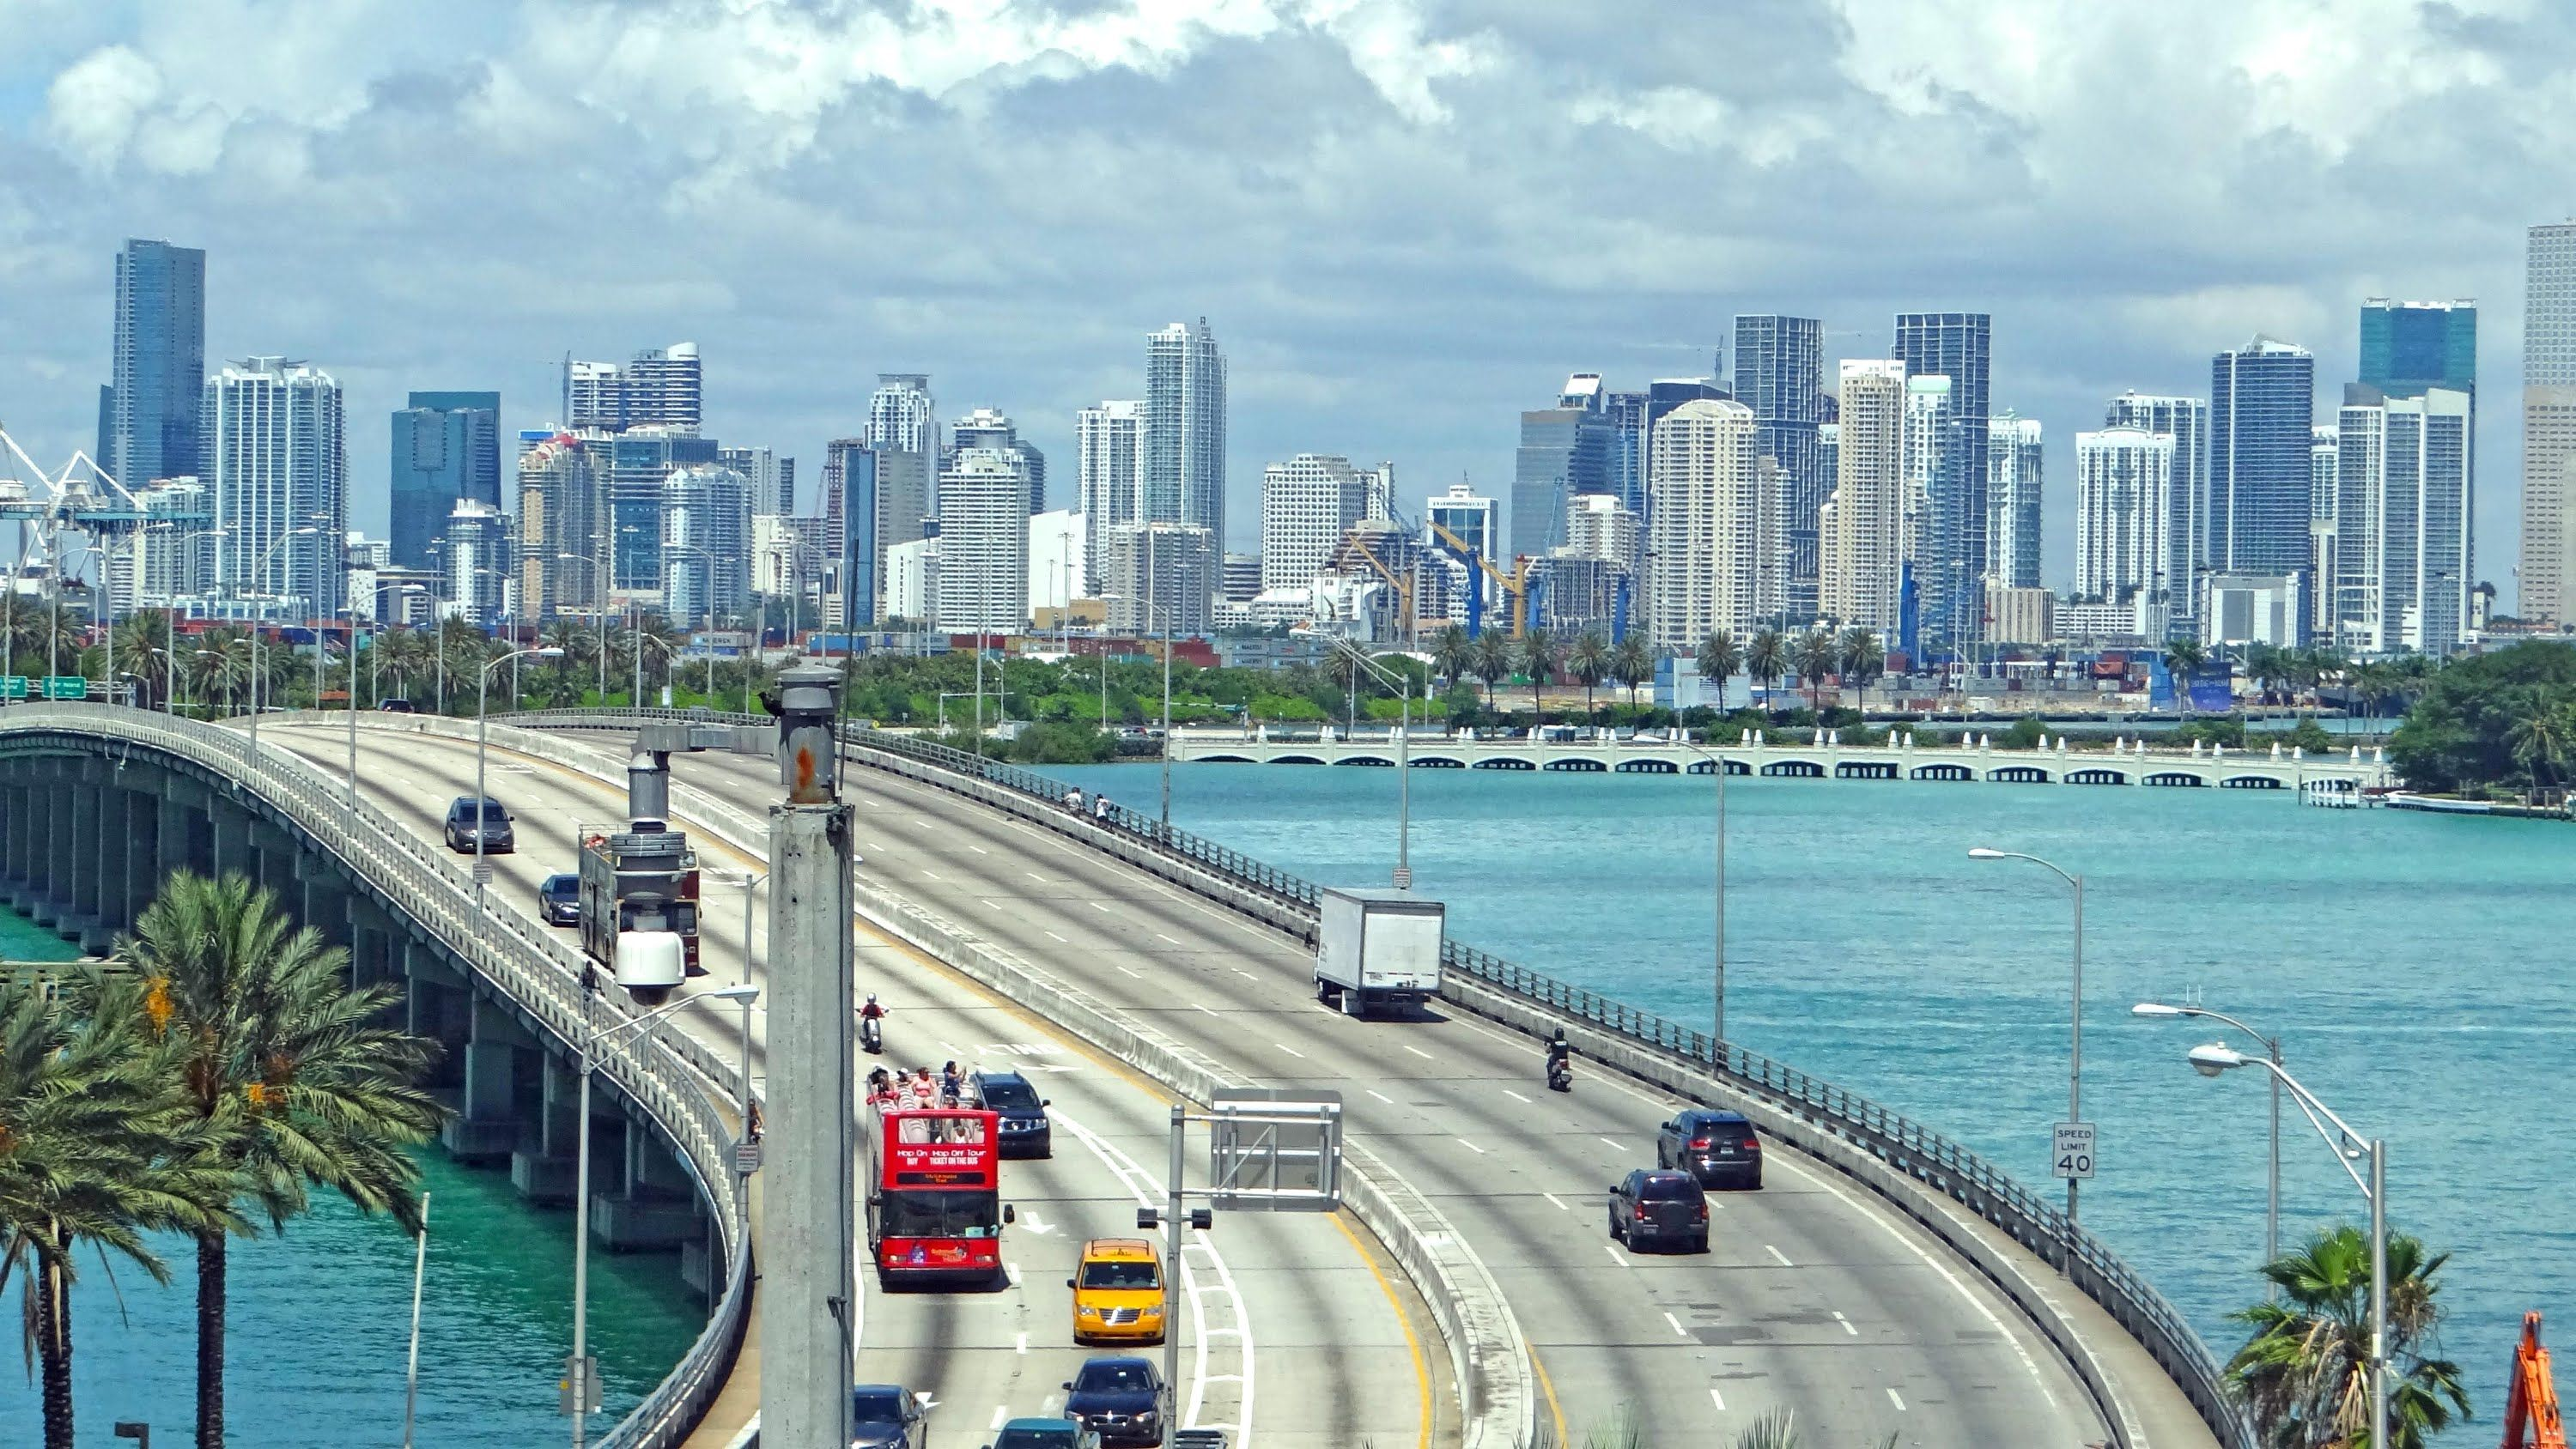 Miami florida 2015 hd 11 minute video miami for Weekend getaway from miami